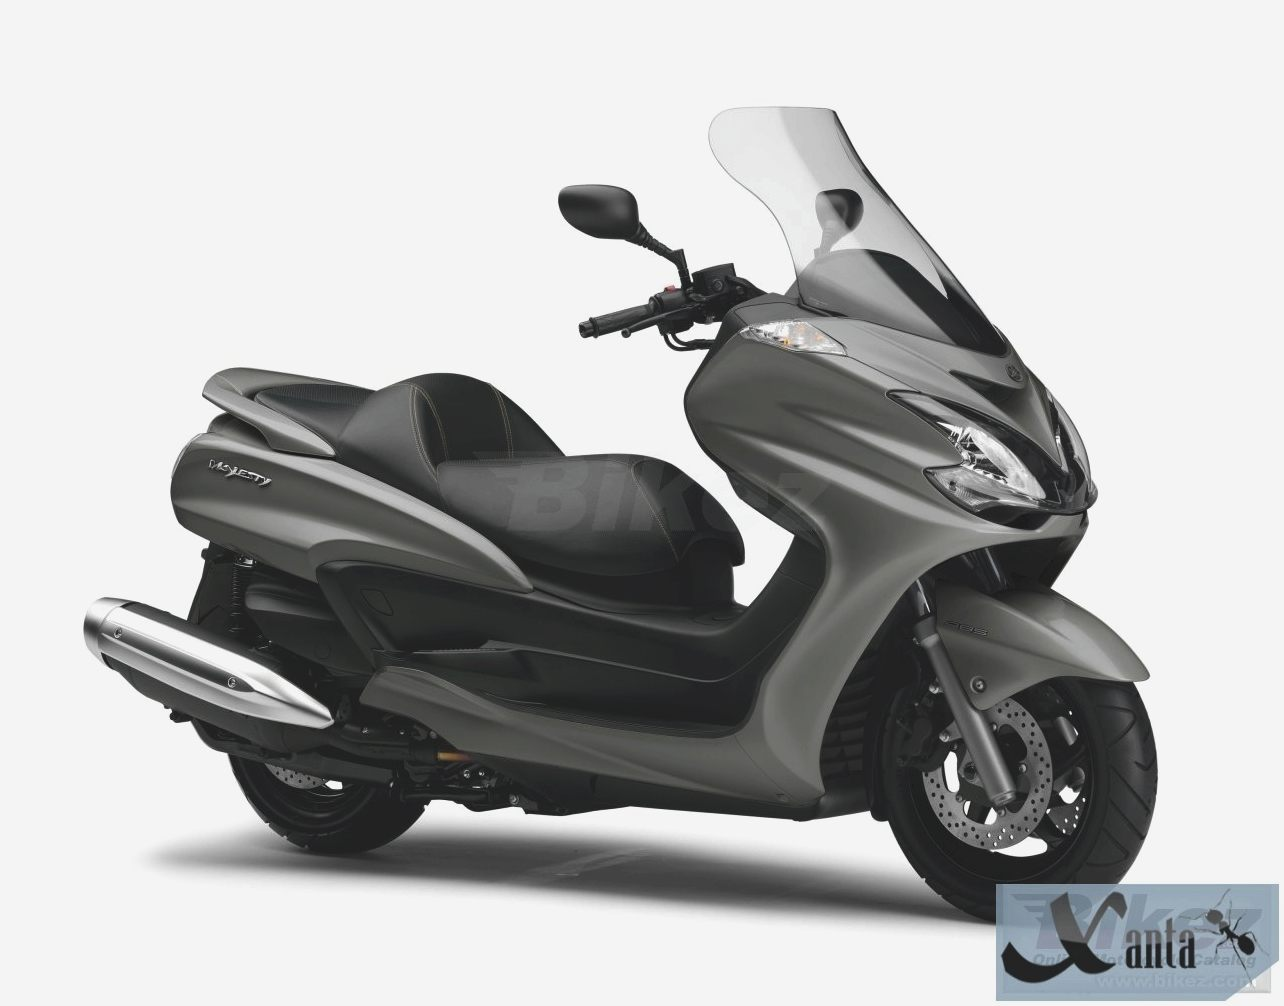 2010 yamaha majesty 400 pics specs and information. Black Bedroom Furniture Sets. Home Design Ideas